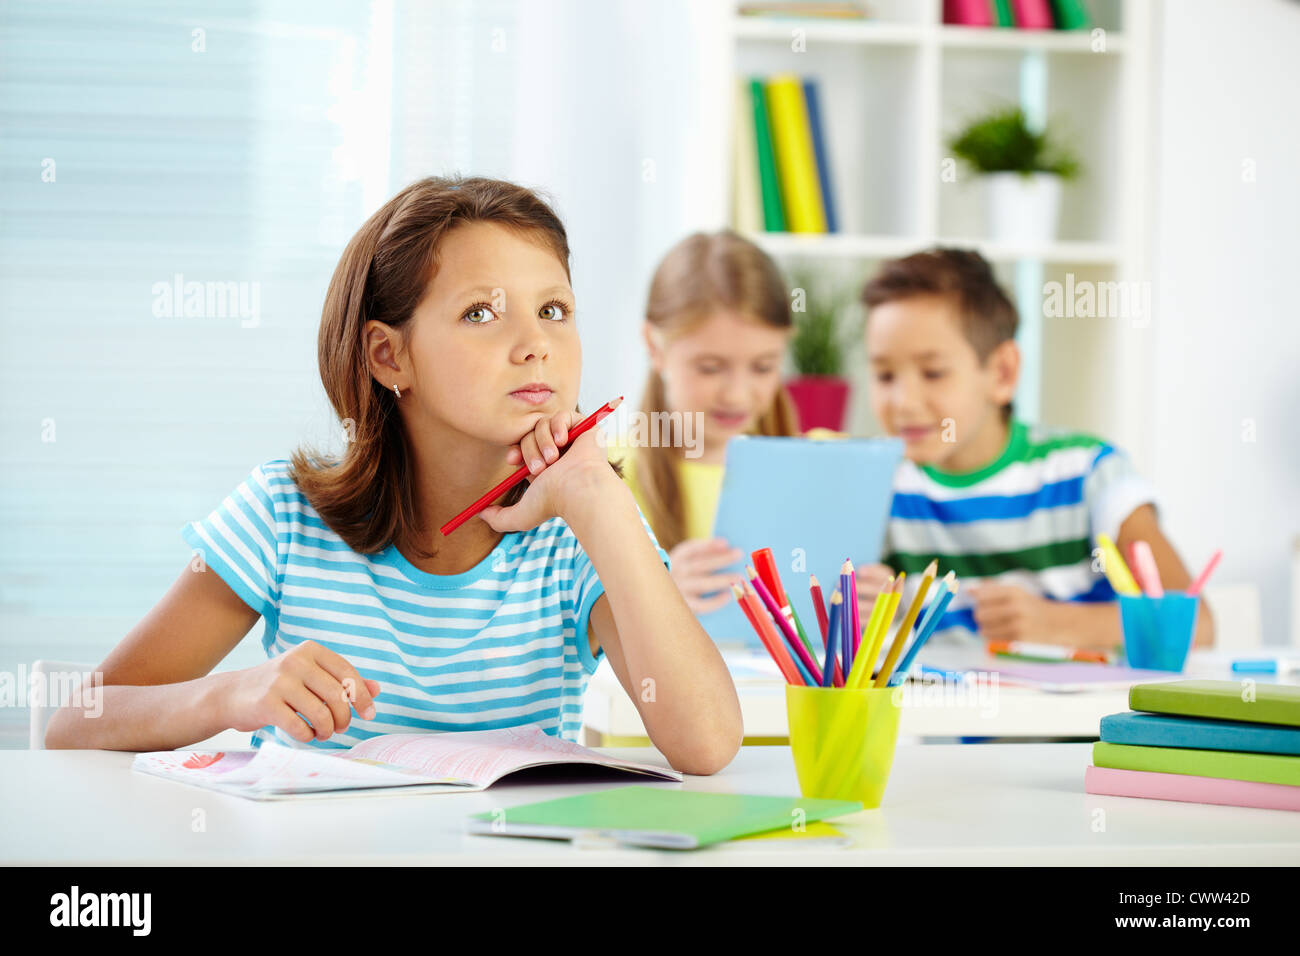 Portrait of lovely girl concentrating on drawing at workplace with schoolmates on background - Stock Image